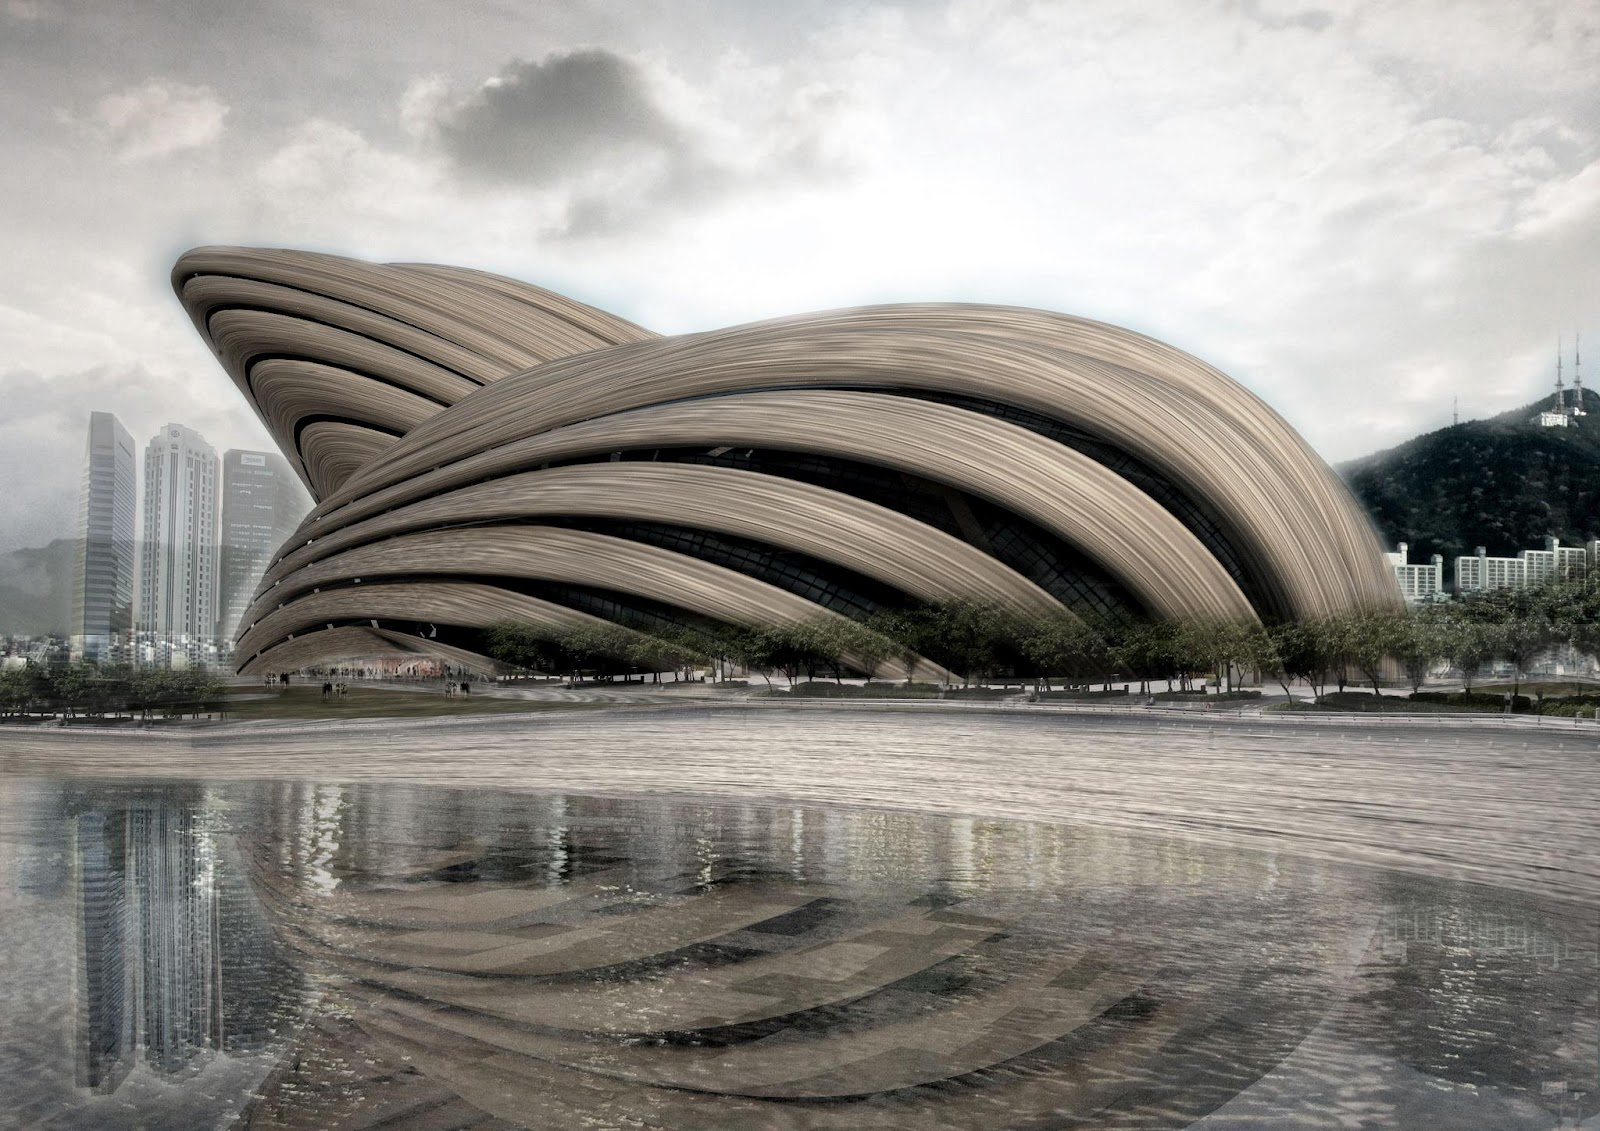 opera amazing architecture busan korea ooda south architectural awesome construction shaped competition